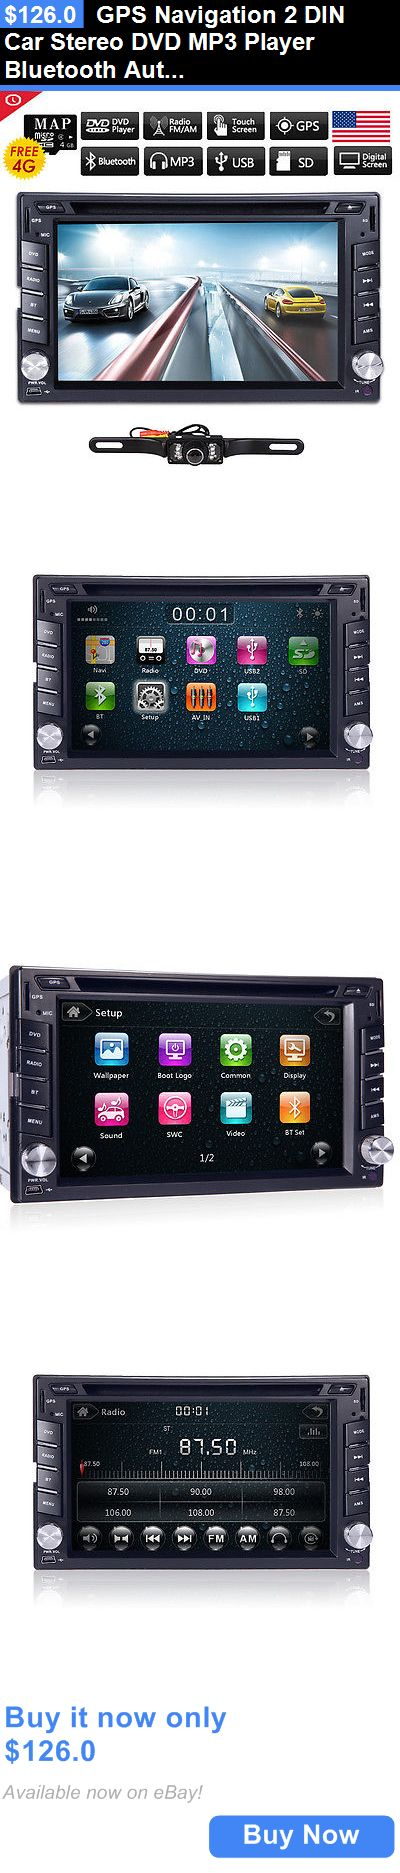 Vehicle Electronics And GPS: Gps Navigation 2 Din Car Stereo Dvd Mp3 Player Bluetooth Auto Radio Ipod+Camera BUY IT NOW ONLY: $126.0